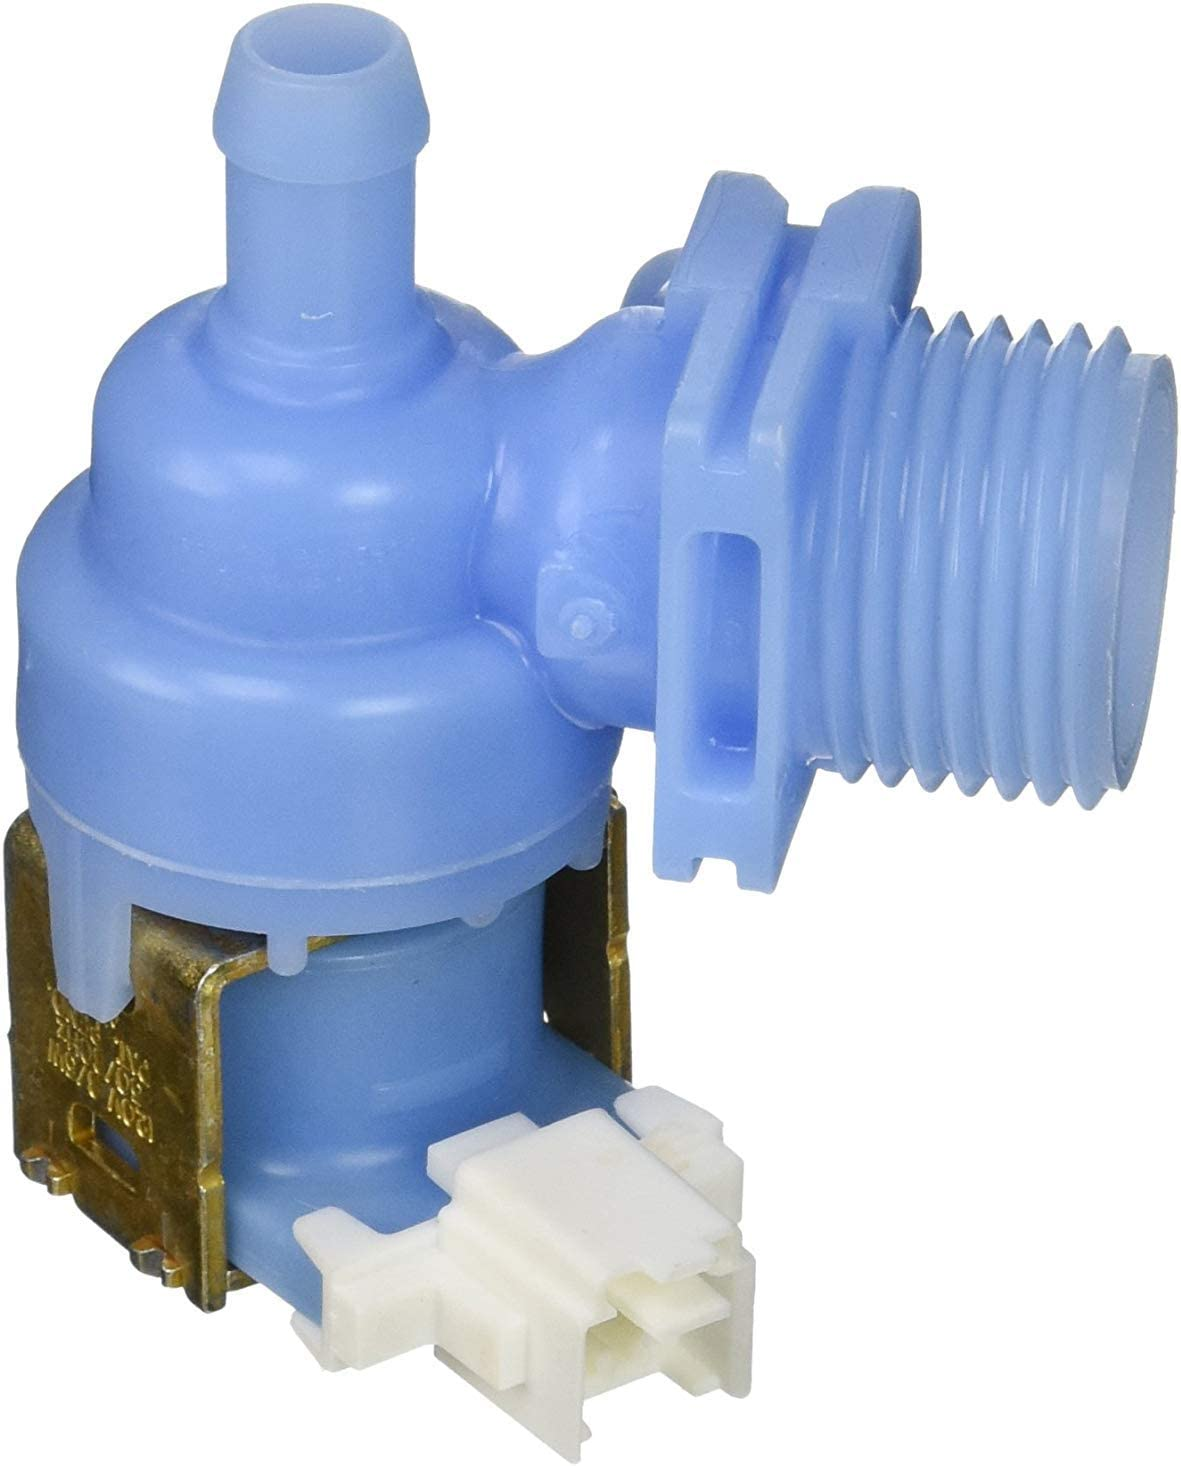 Endurance Pro W10327249 Dishwasher Inlet Water Valve Replacement for Whirlpool